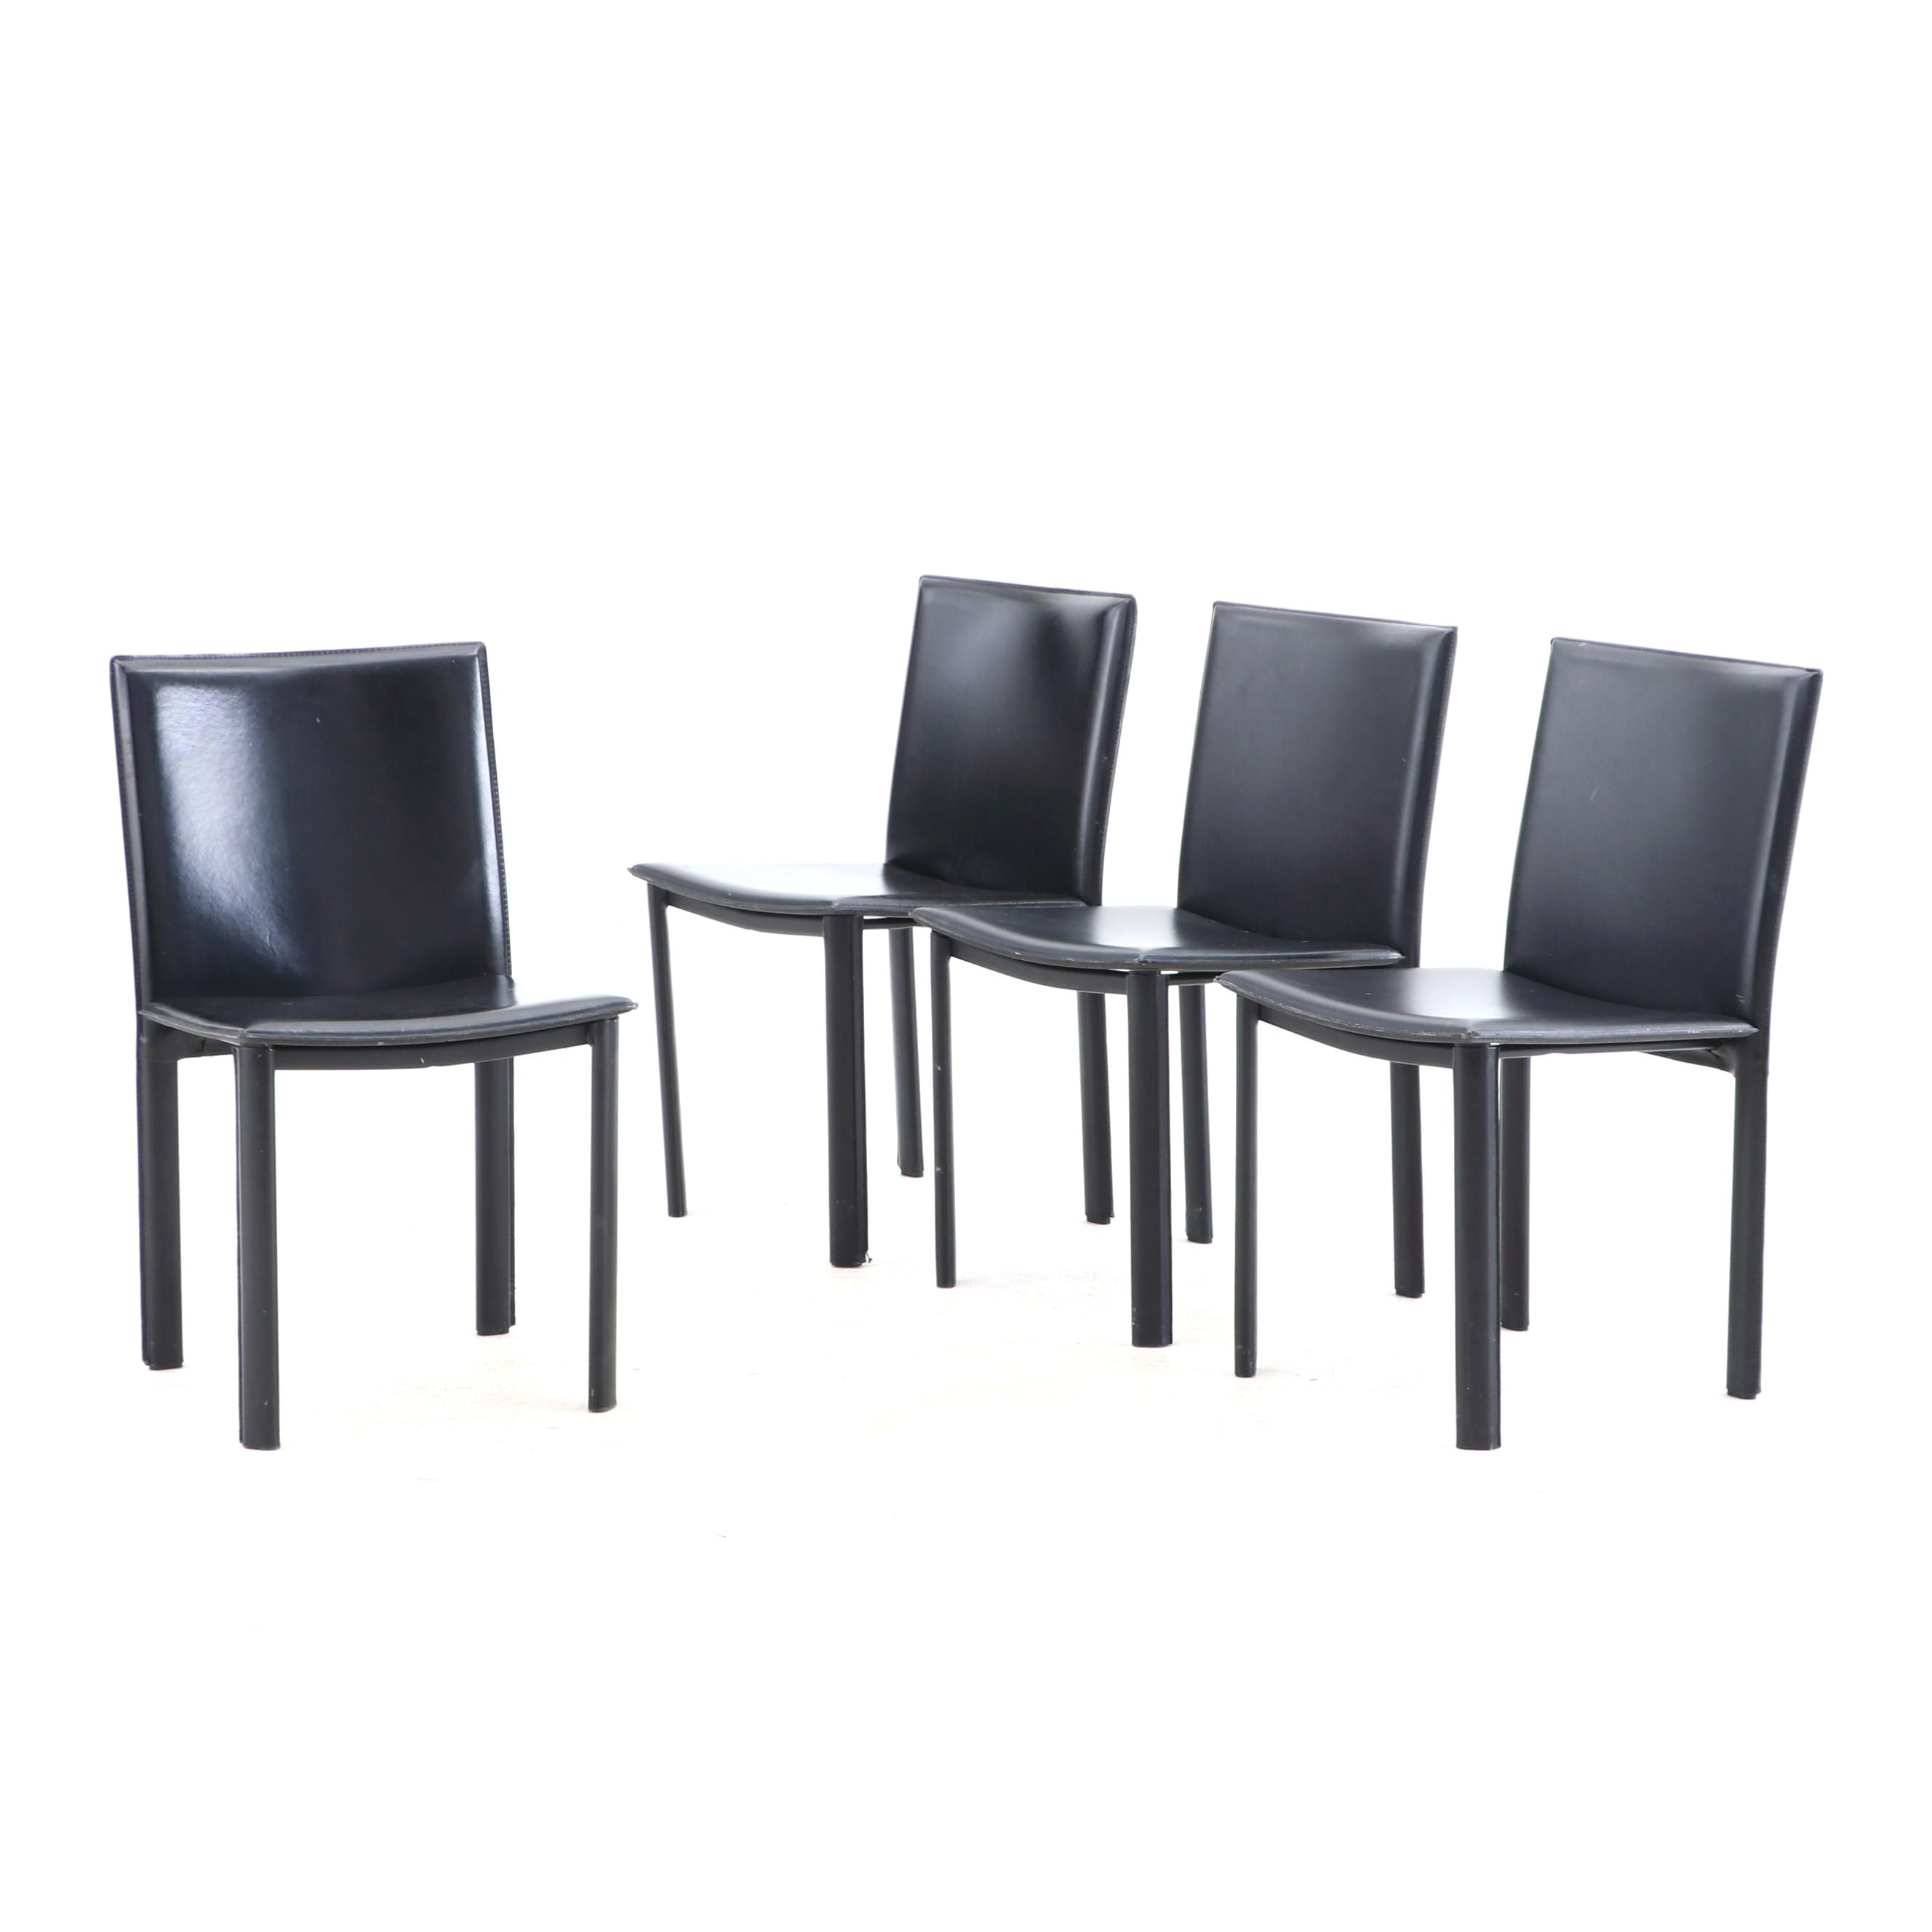 Four Black Vinyl Side Dining Chairs